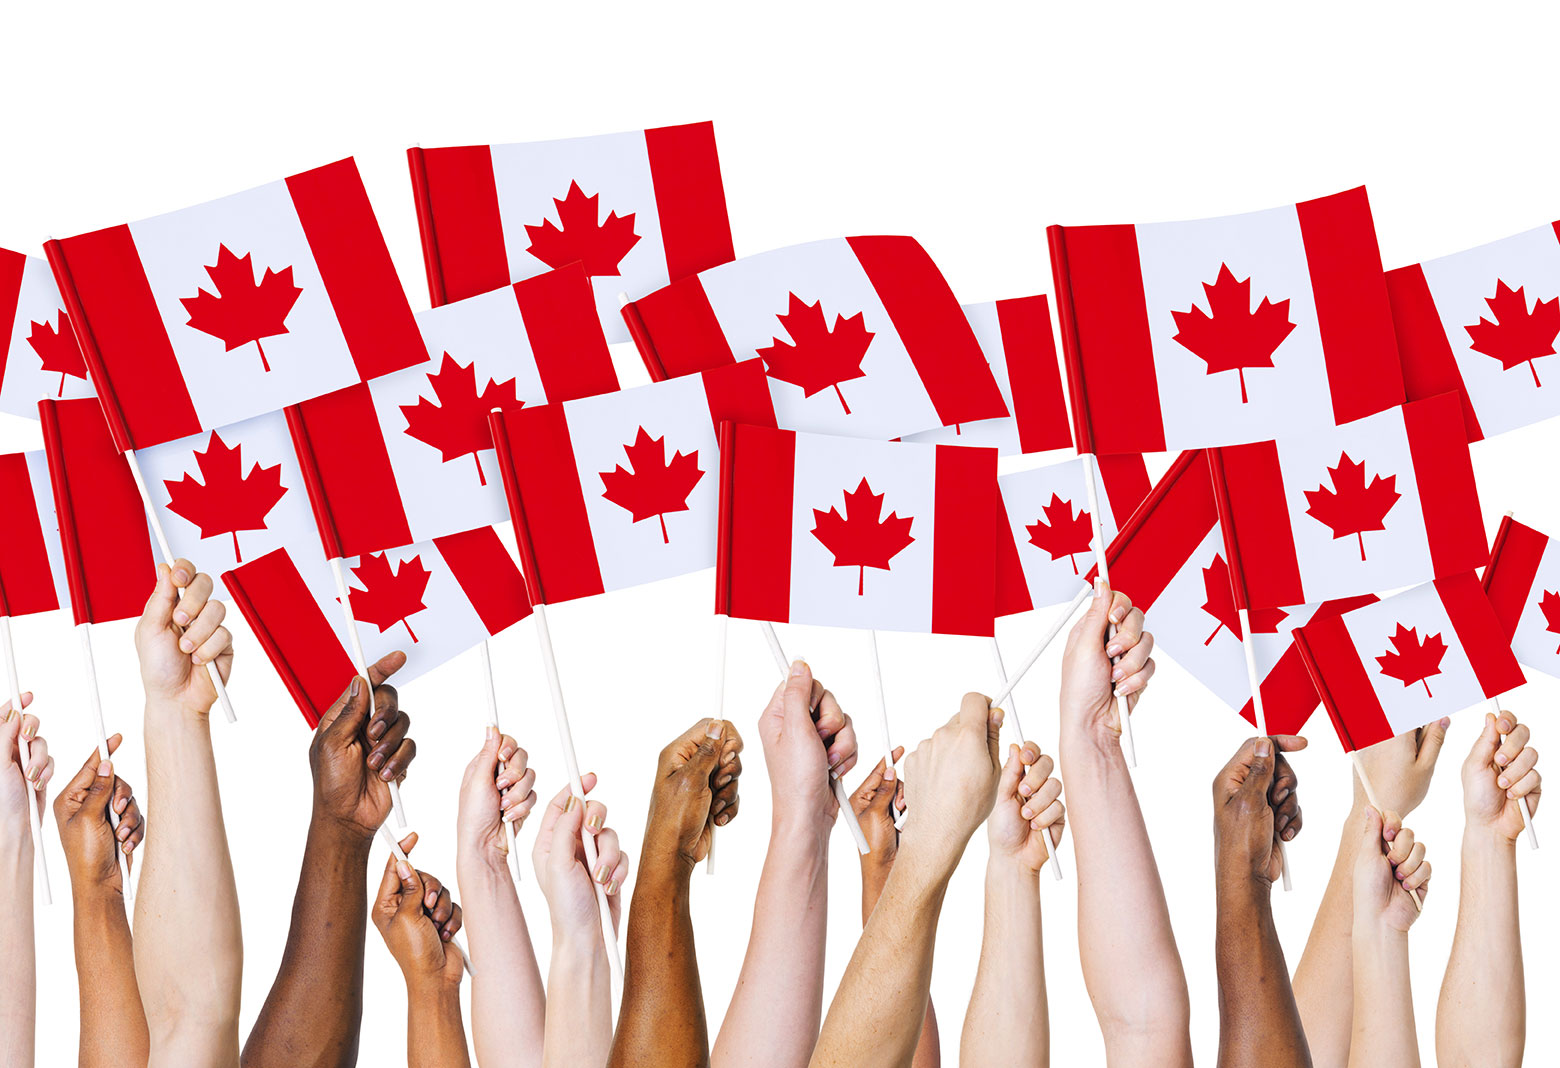 cultural diversity in canada essay Social issues essays: cultural diversity similar essays eth 125 - culture and diversity the expansion of cultural diversity in canada.